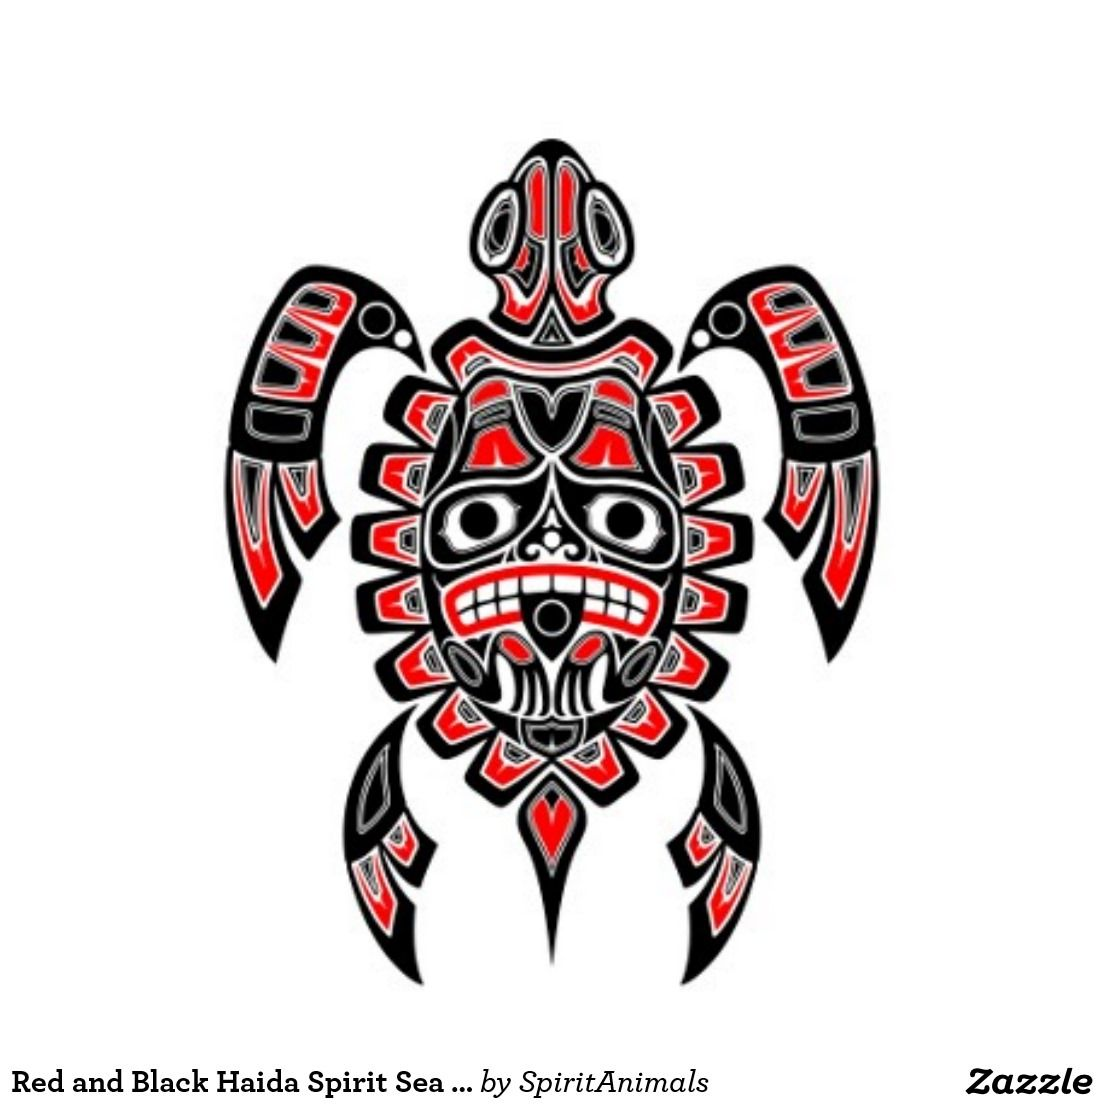 haida art turtle google search tattoo ideas pinterest haida art turtle and google search. Black Bedroom Furniture Sets. Home Design Ideas